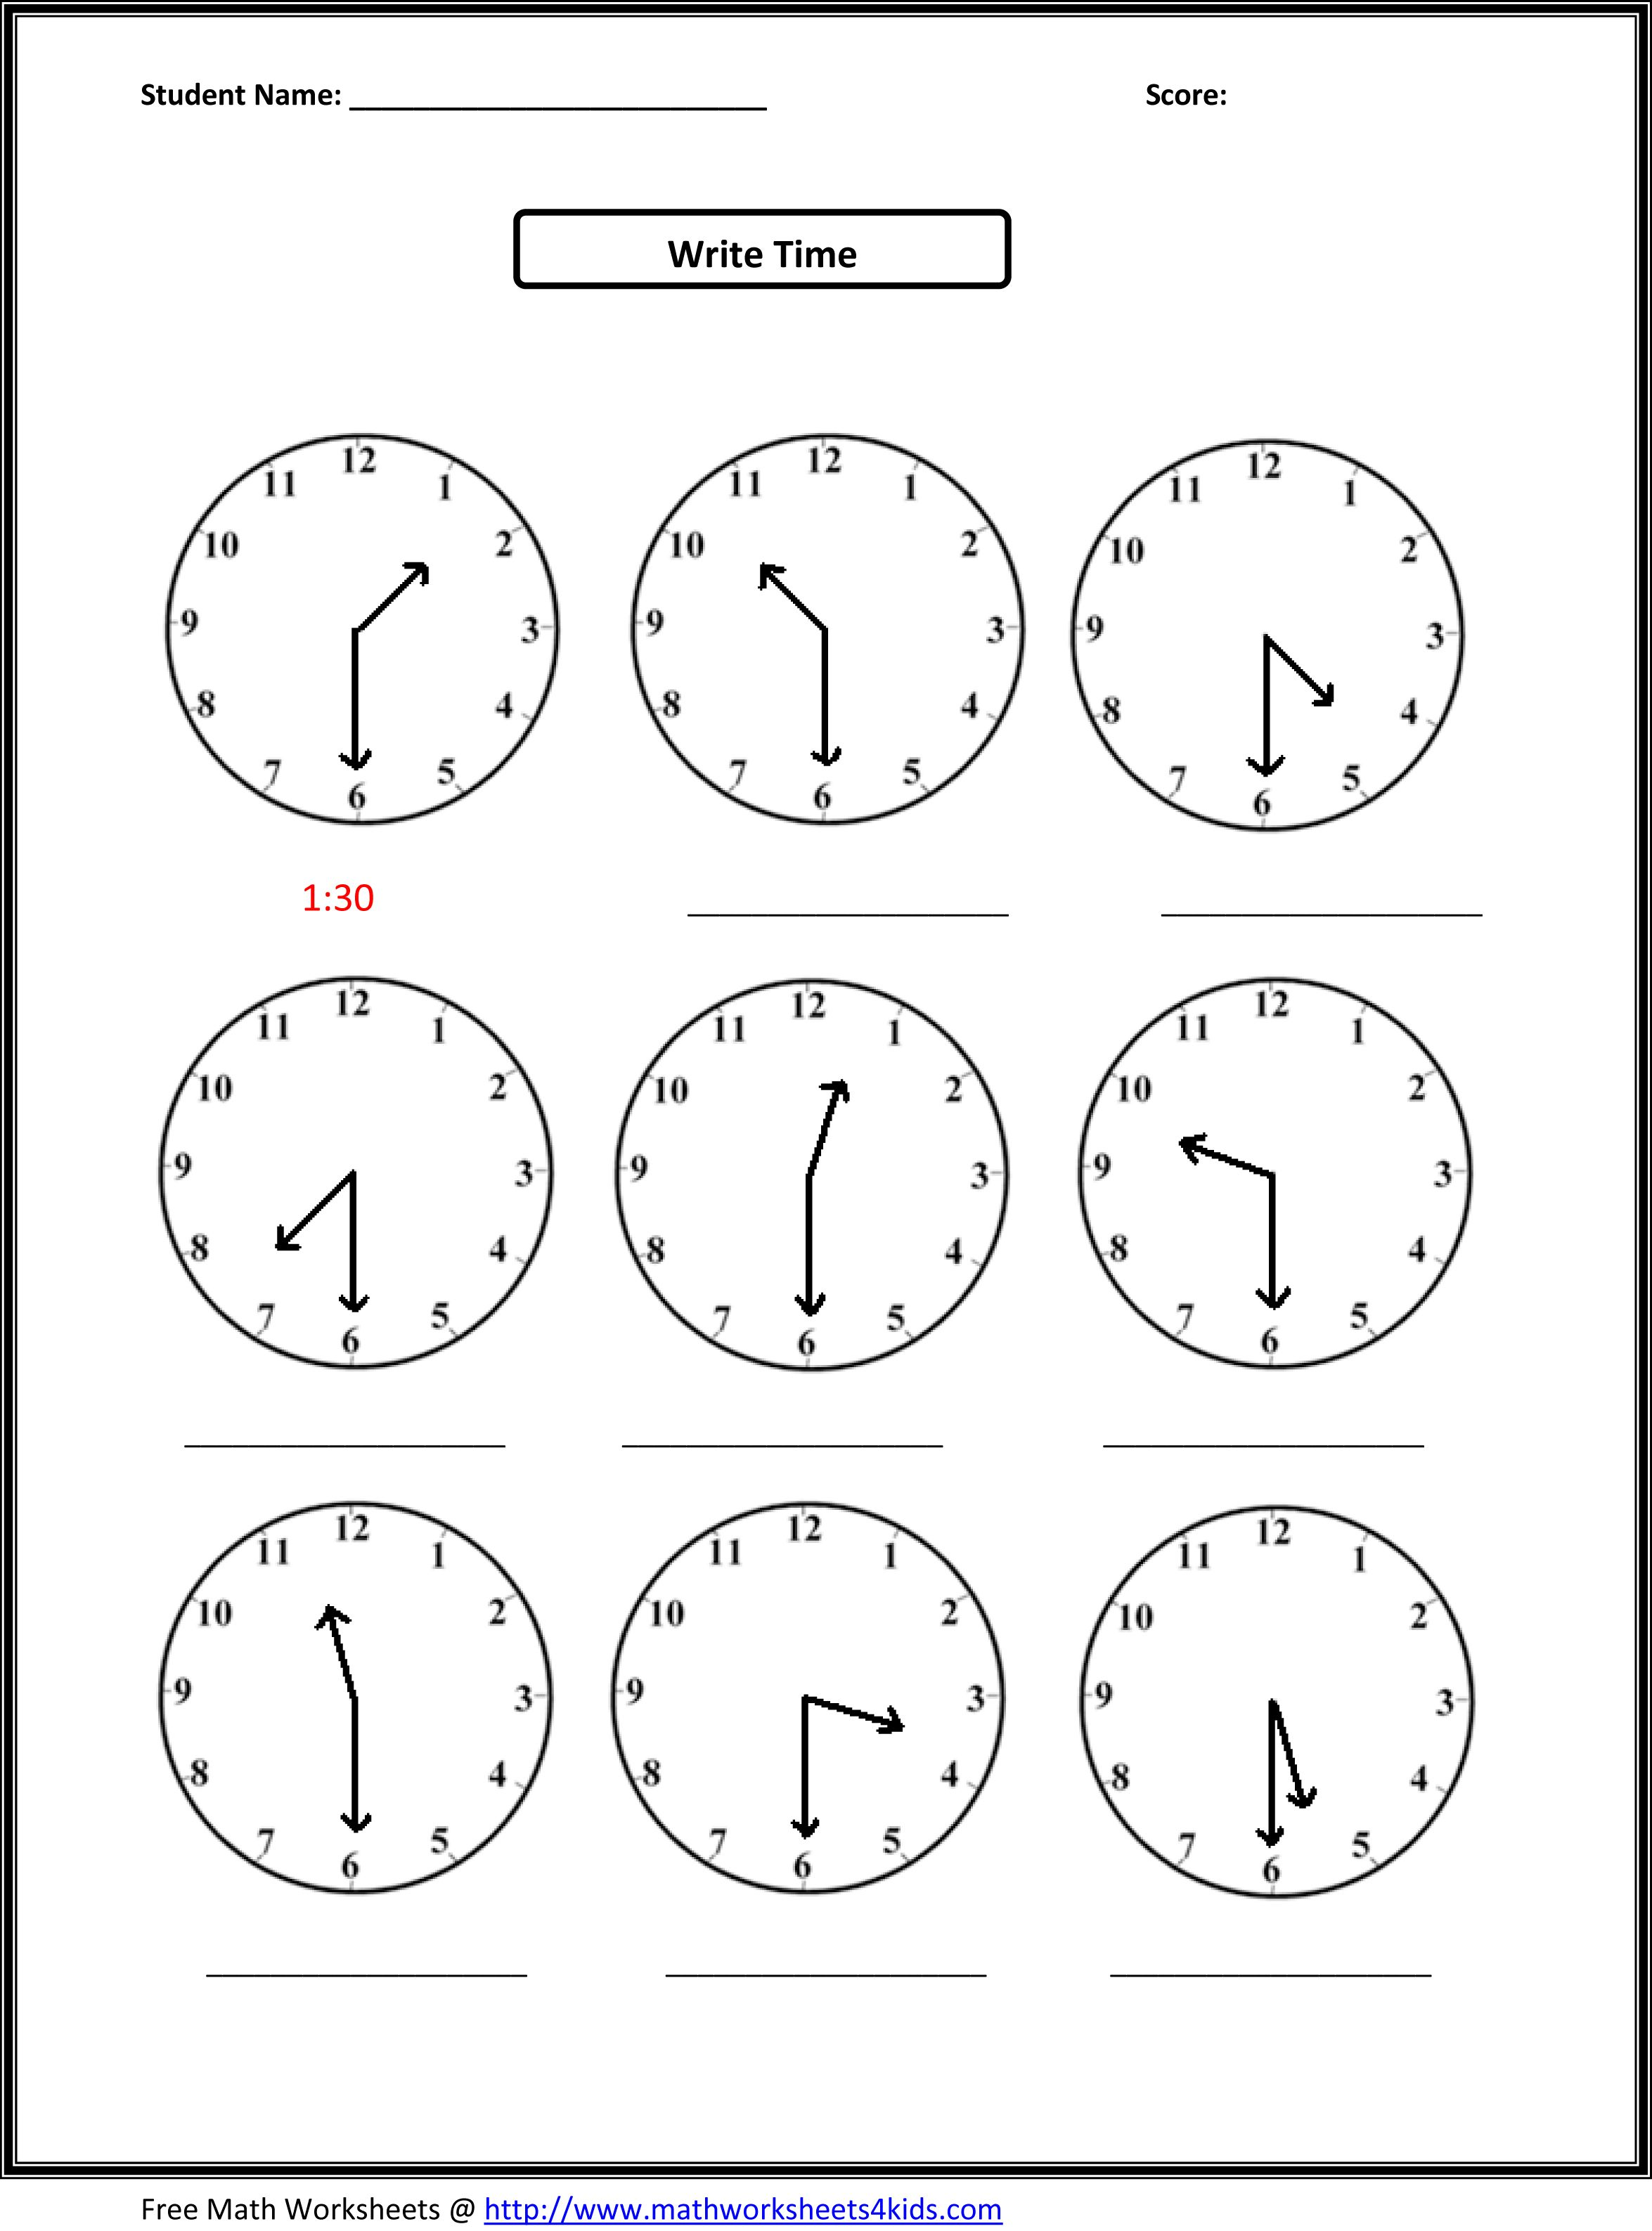 Weirdmailus  Pretty Worksheet On Time For Grade   Reocurent With Fascinating Free Printable Telling Time Worksheets Nd Grade  Reocurent With Adorable Spanish Preterite Vs Imperfect Practice Worksheet Also Concave And Convex Lenses Worksheet In Addition Shoulders And Arms Px Worksheet And Angle Puzzles Worksheet As Well As Classify And Categorize Worksheets Additionally Fraction Problems With Answers Worksheet From Reocurentcom With Weirdmailus  Fascinating Worksheet On Time For Grade   Reocurent With Adorable Free Printable Telling Time Worksheets Nd Grade  Reocurent And Pretty Spanish Preterite Vs Imperfect Practice Worksheet Also Concave And Convex Lenses Worksheet In Addition Shoulders And Arms Px Worksheet From Reocurentcom